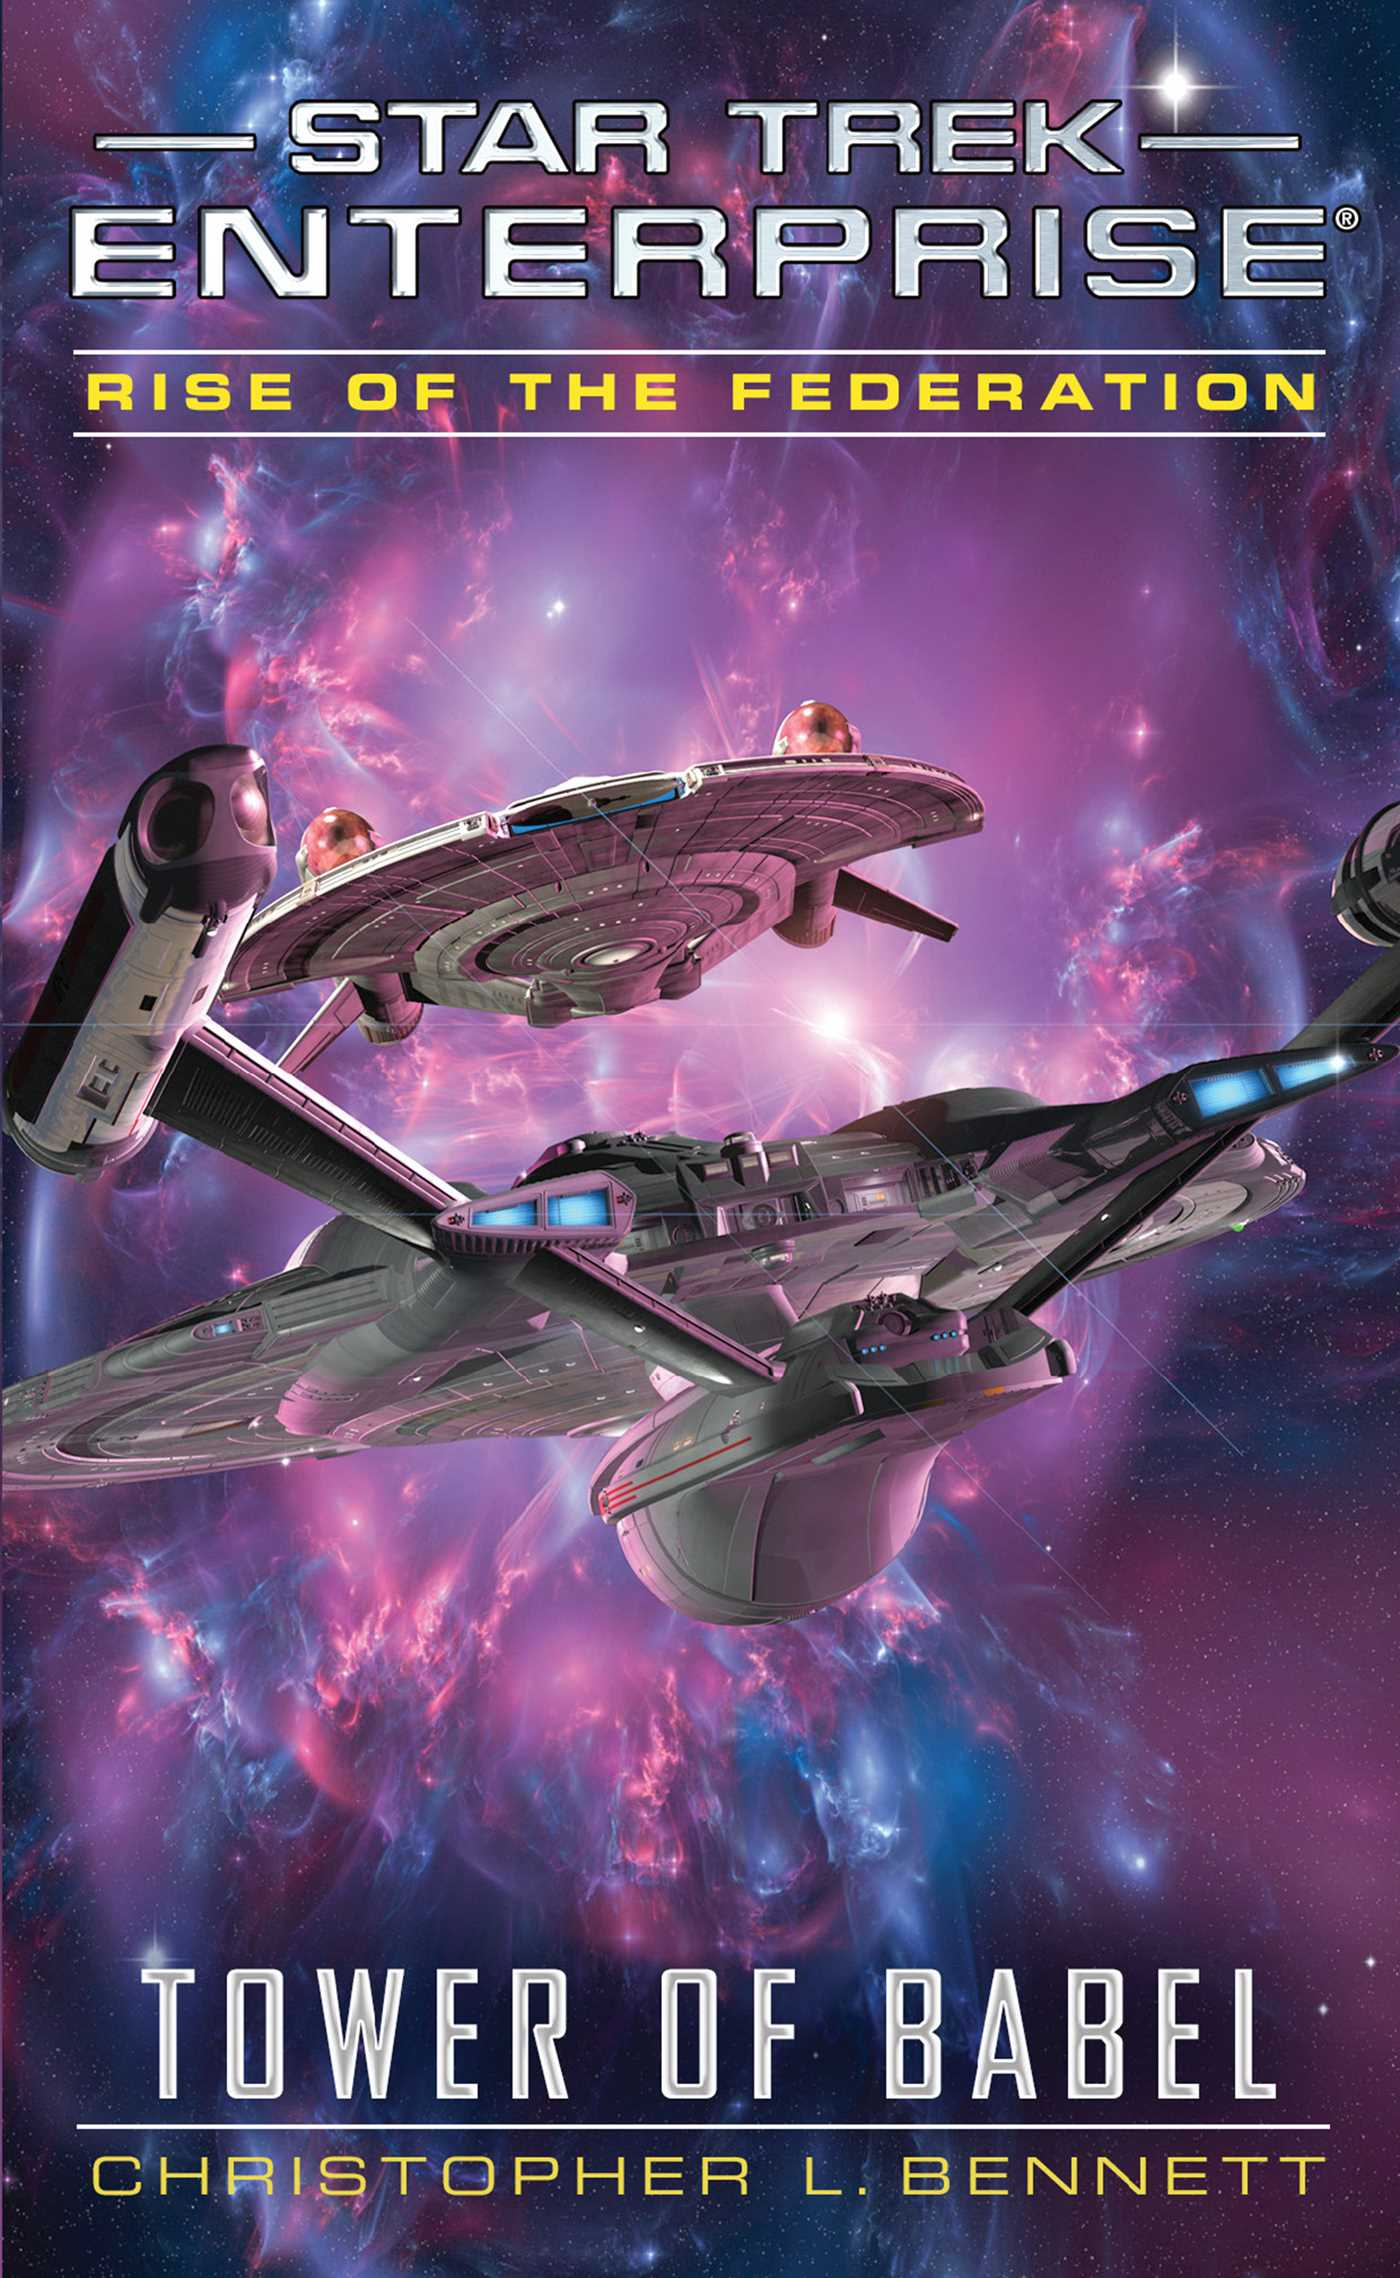 Star-trek-enterprise-rise-of-the-federation-tower-of-babel-9781476749662_hr